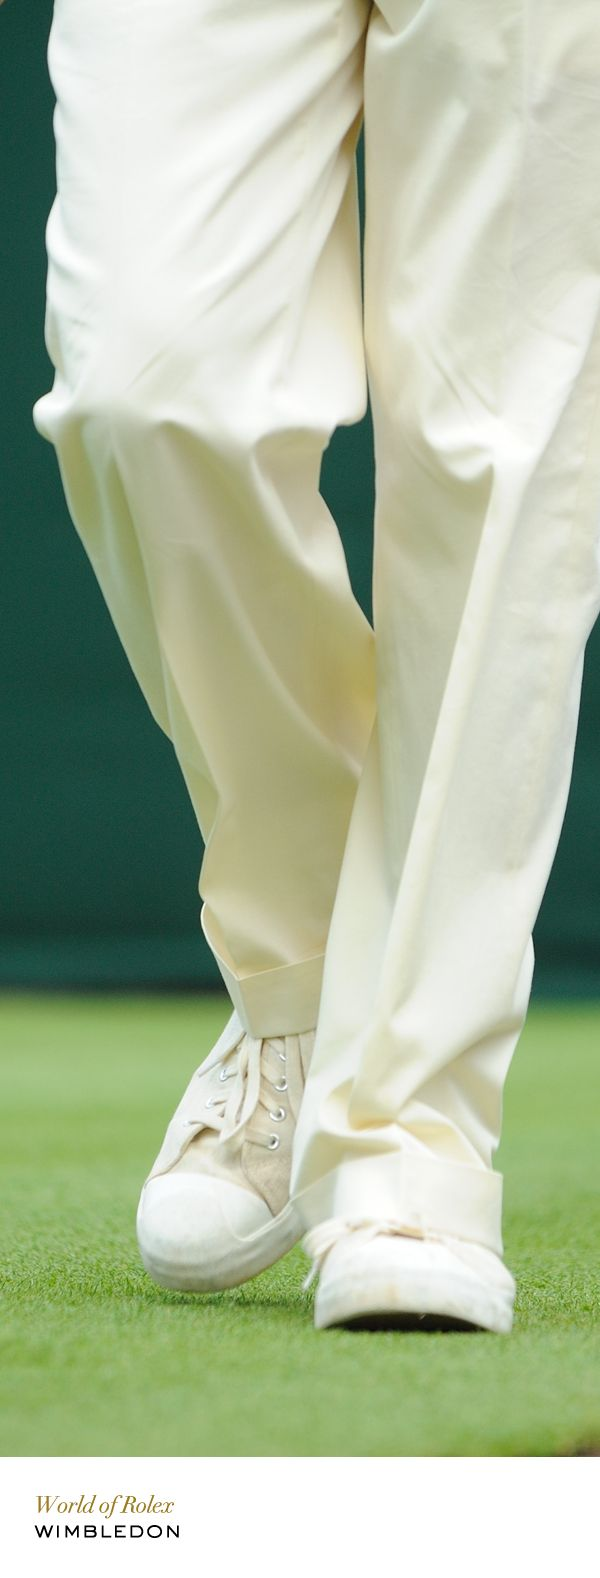 Almost-entirely white dress code. #Wimbledon #RolexOfficial